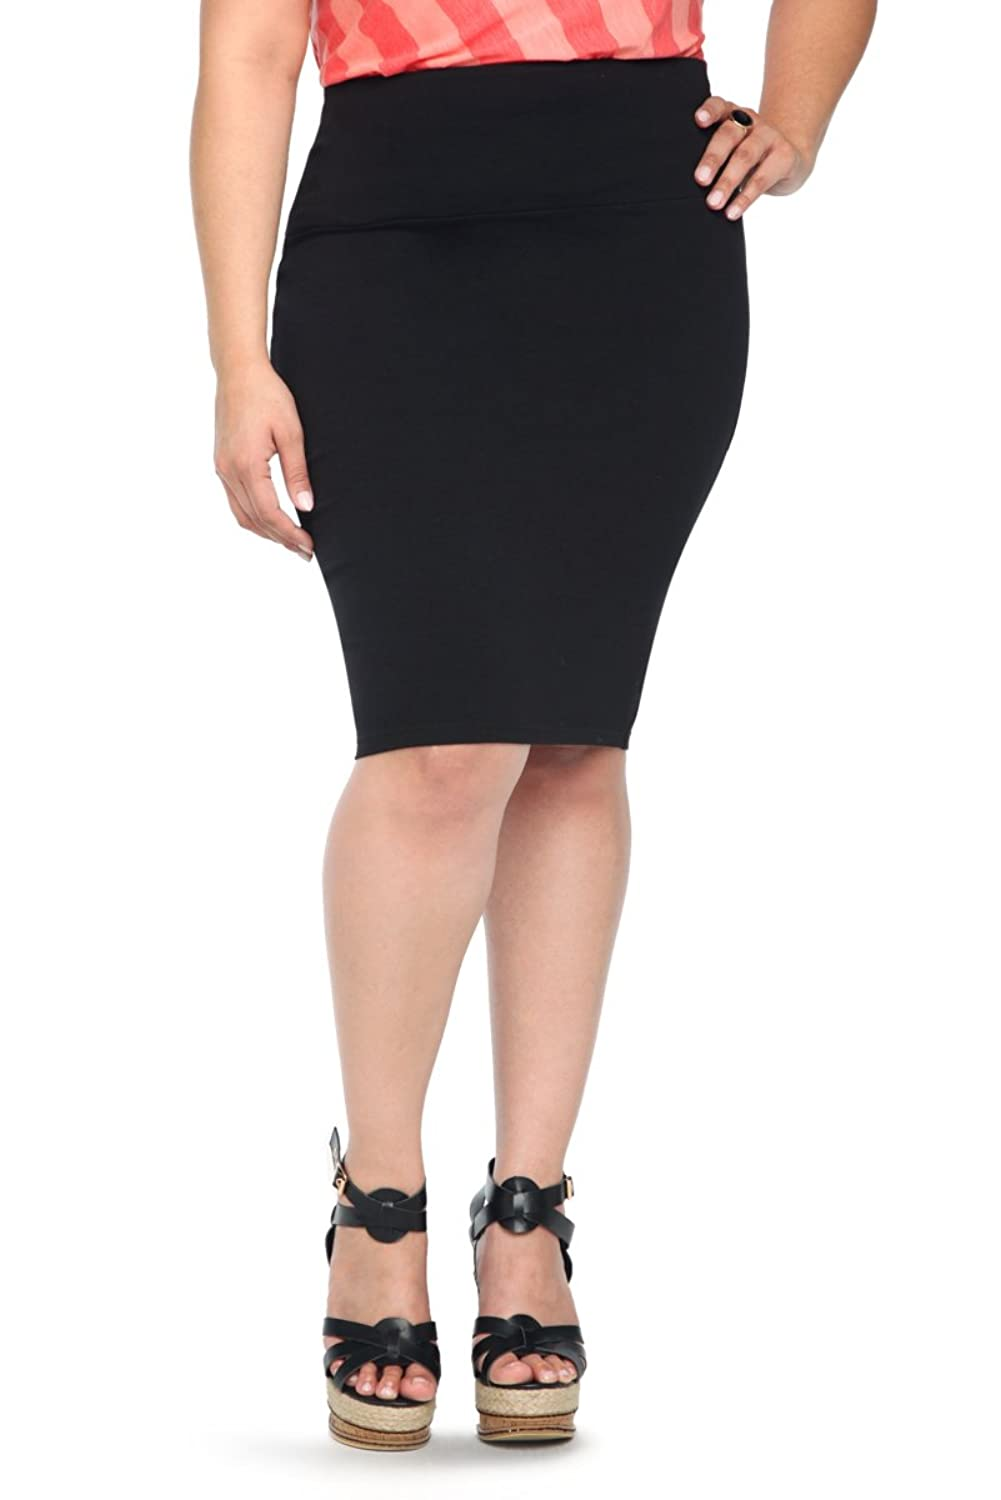 Torrid Women's Plus Size Fold Over Skirt